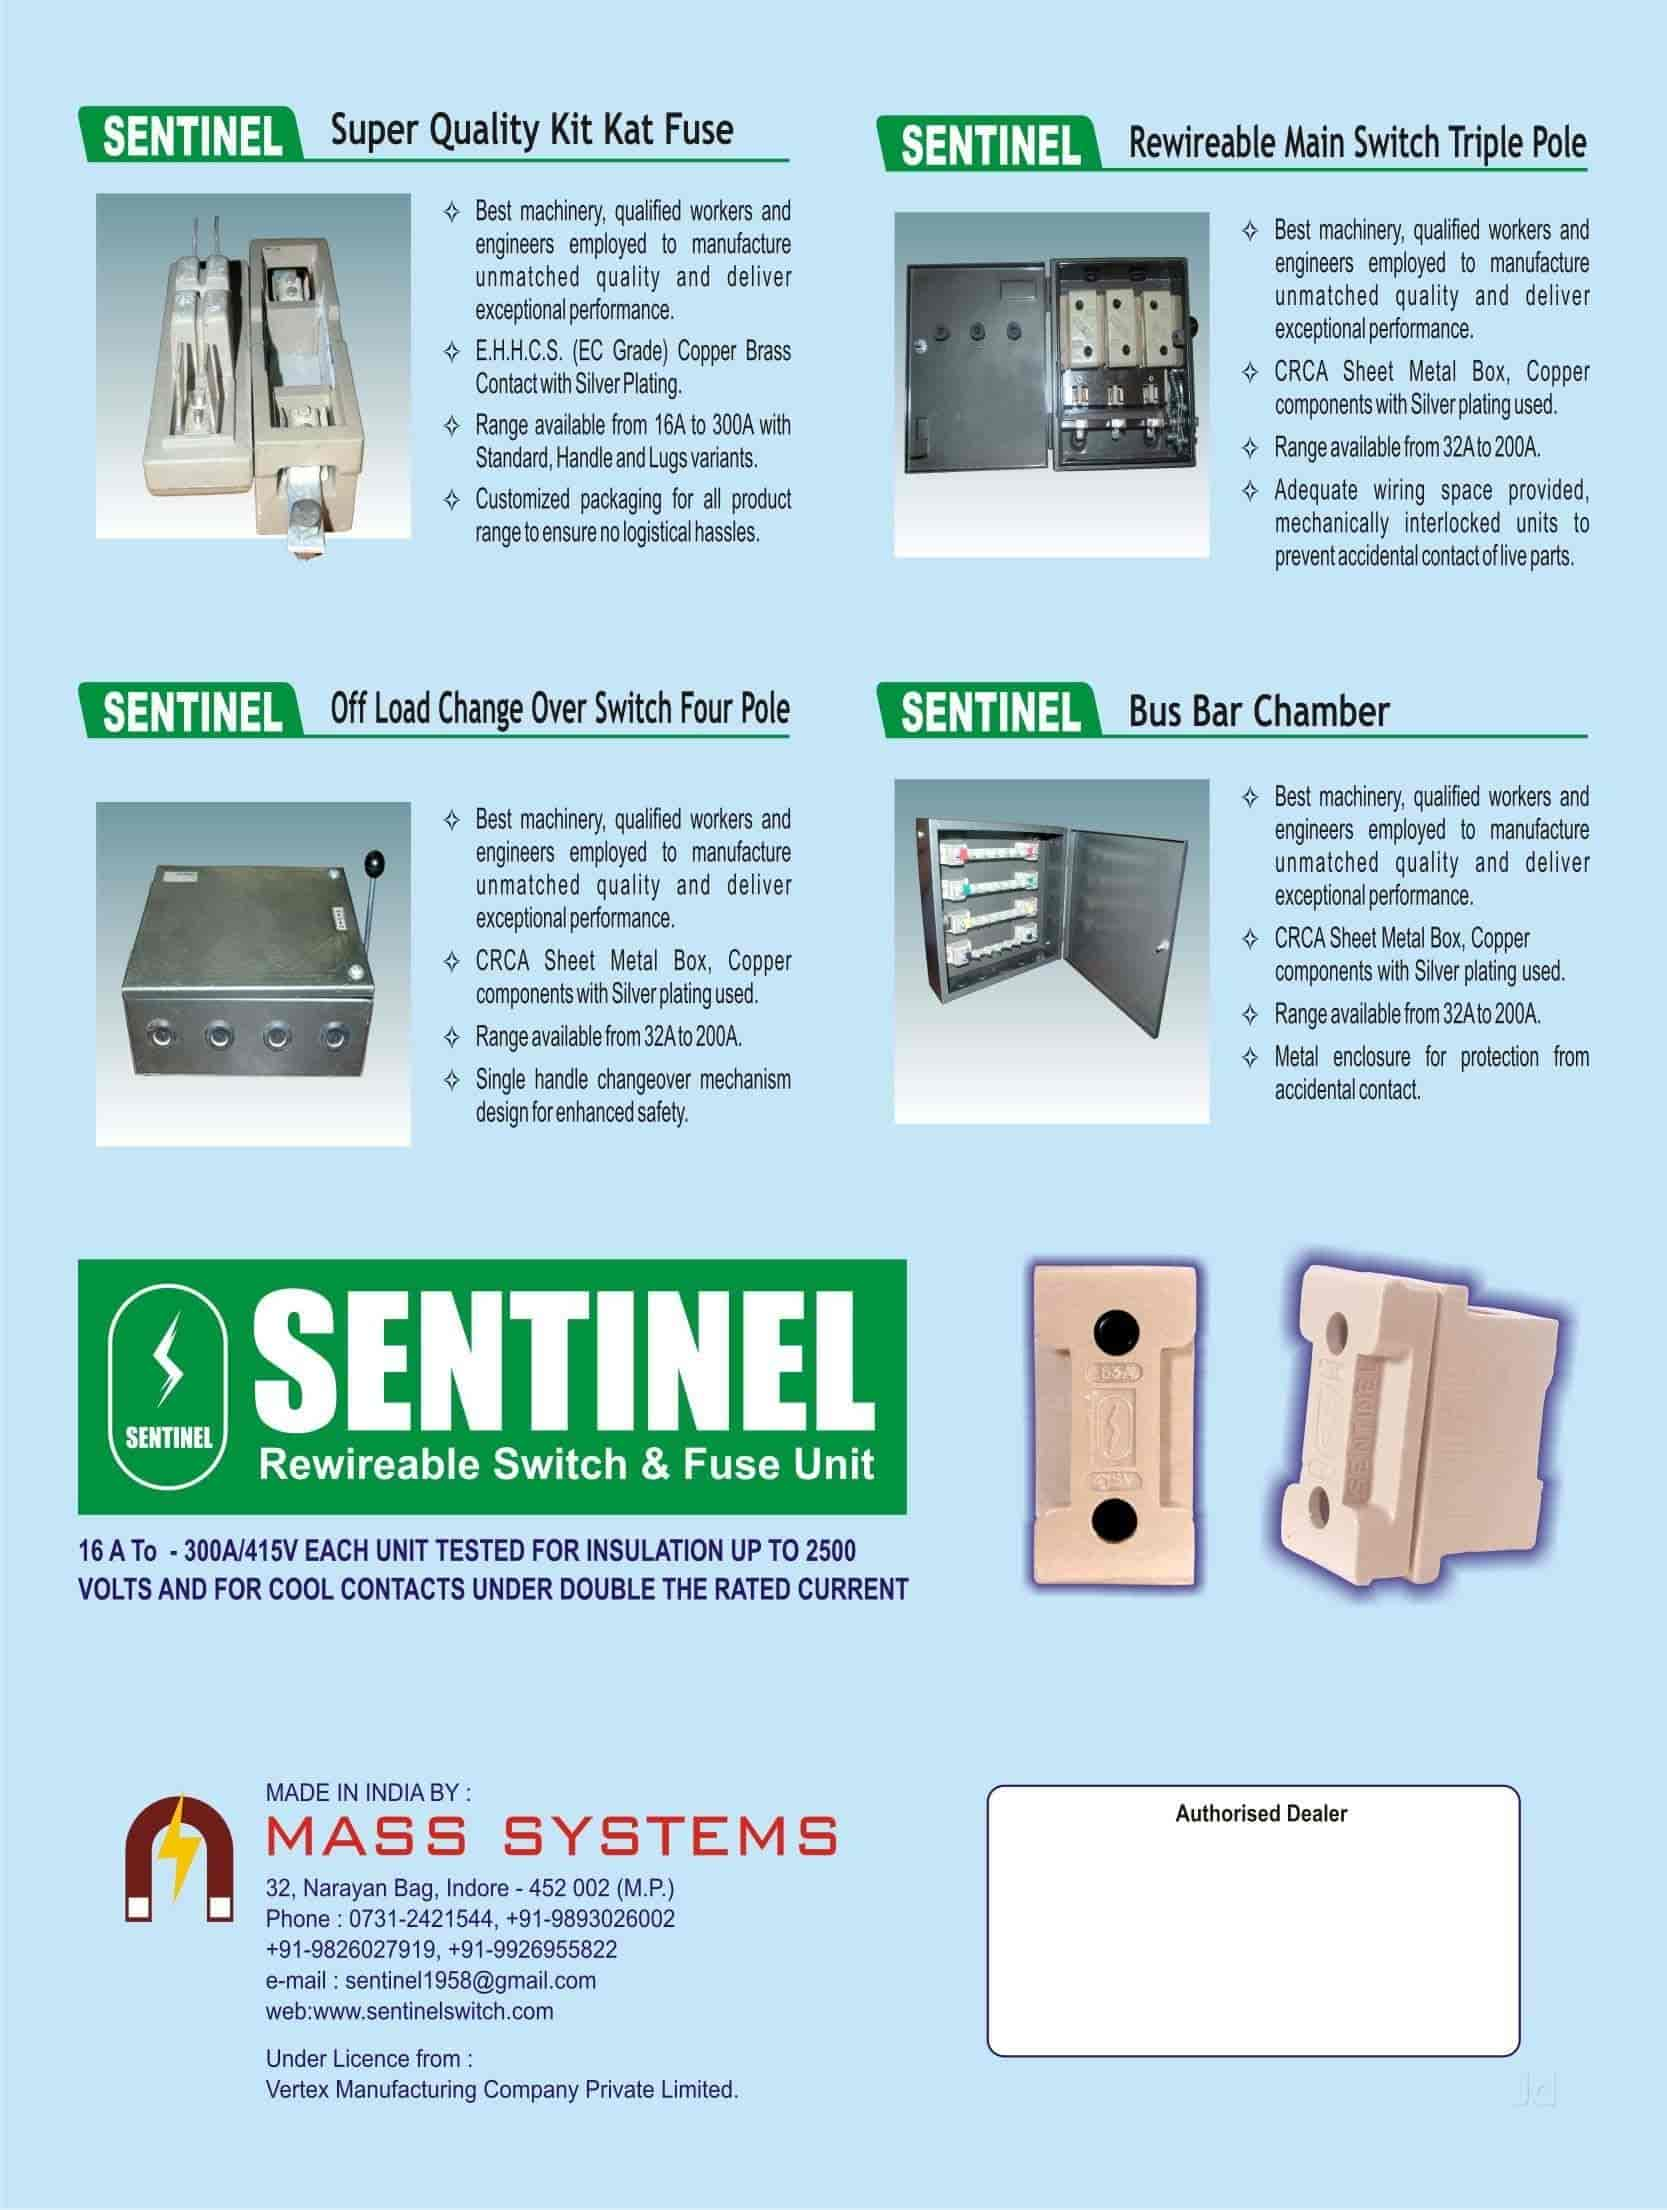 Sentinel Fuse and Switch Unit ( Mass Systems), Narayan Bagh ...